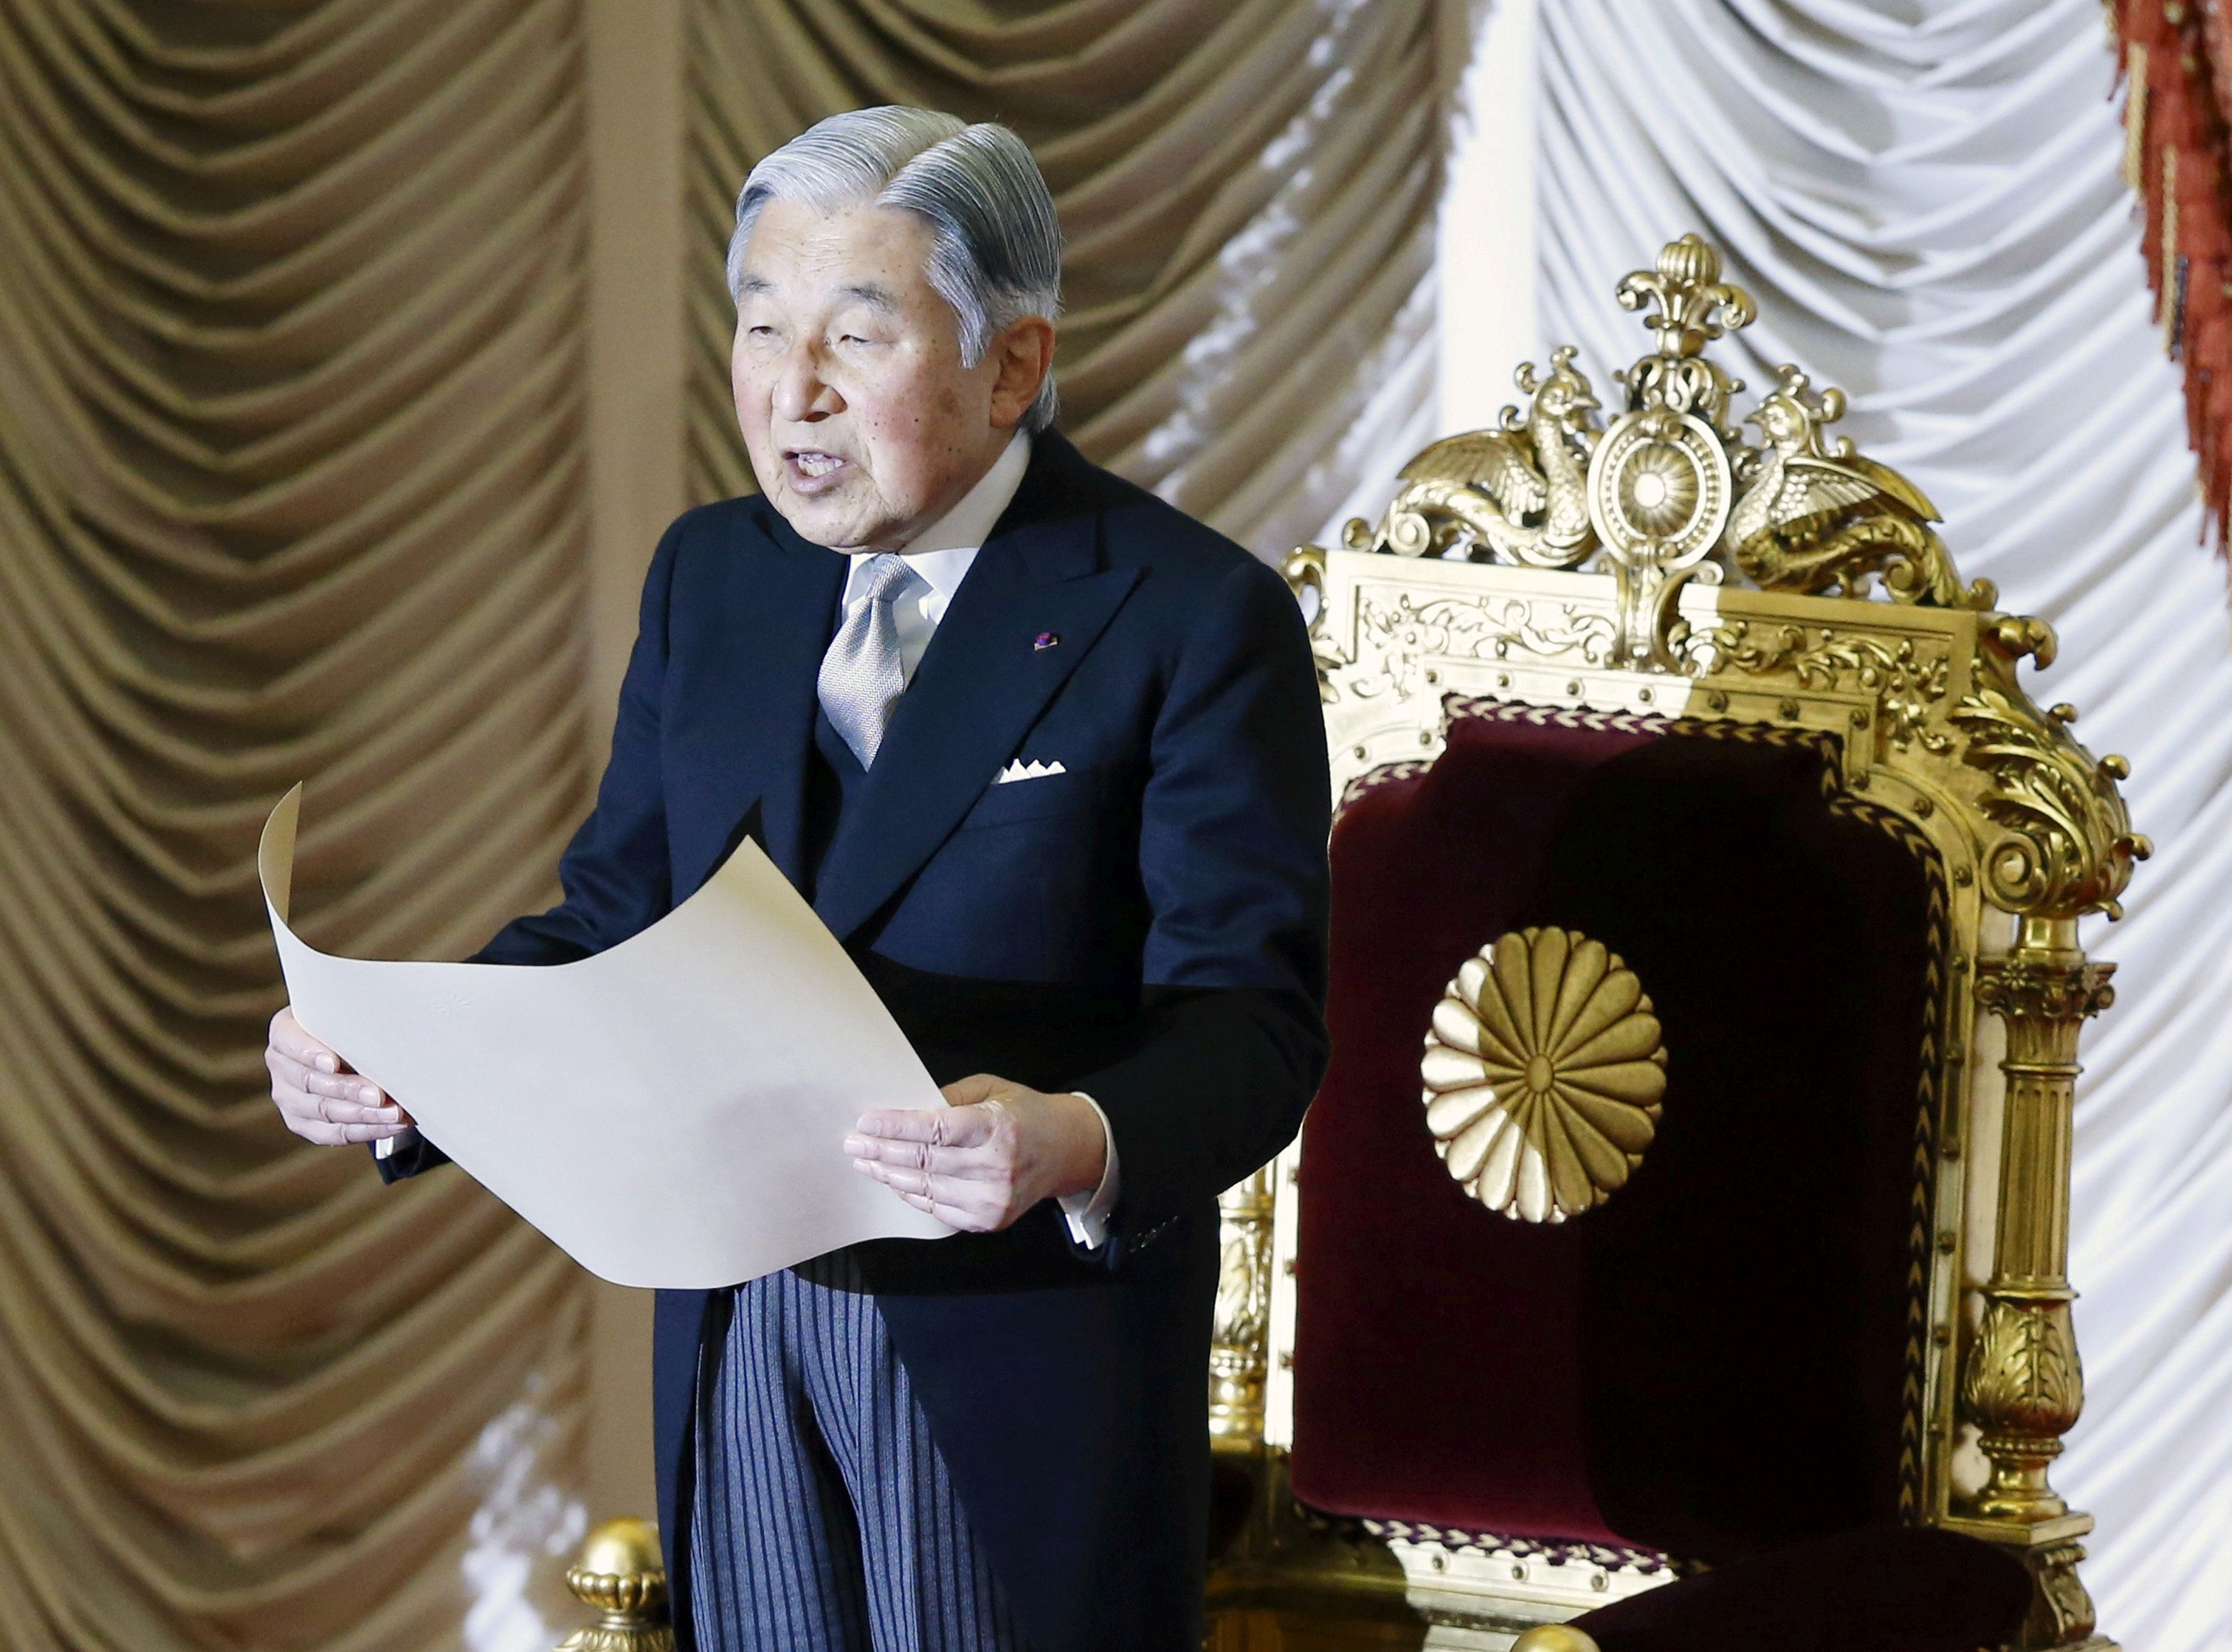 Most Japanese sympathize with the emperor's desire to step